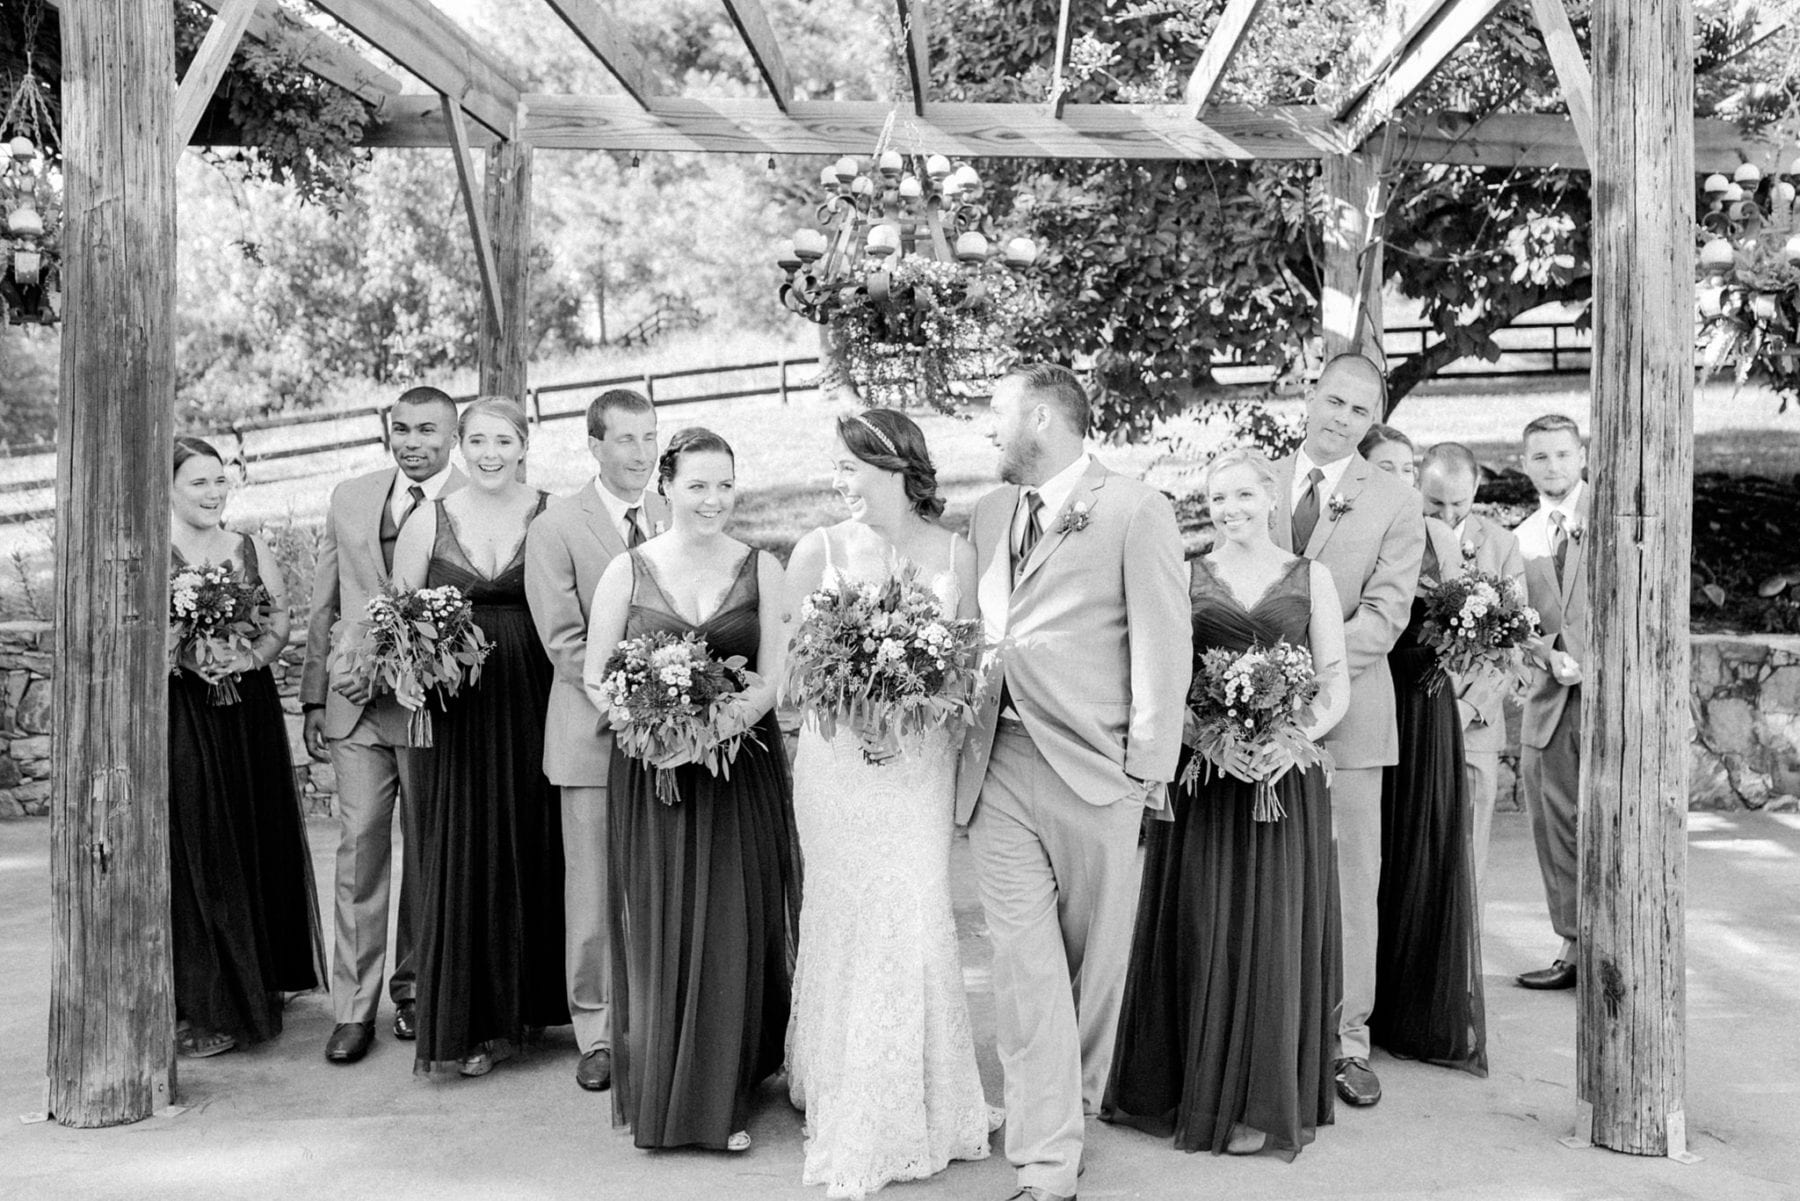 Tranquility Farm Wedding Photos Leesburg Wedding Photographer Megan Kelsey Photography Virginia Wedding Photographer Matt & Colleen-95.jpg